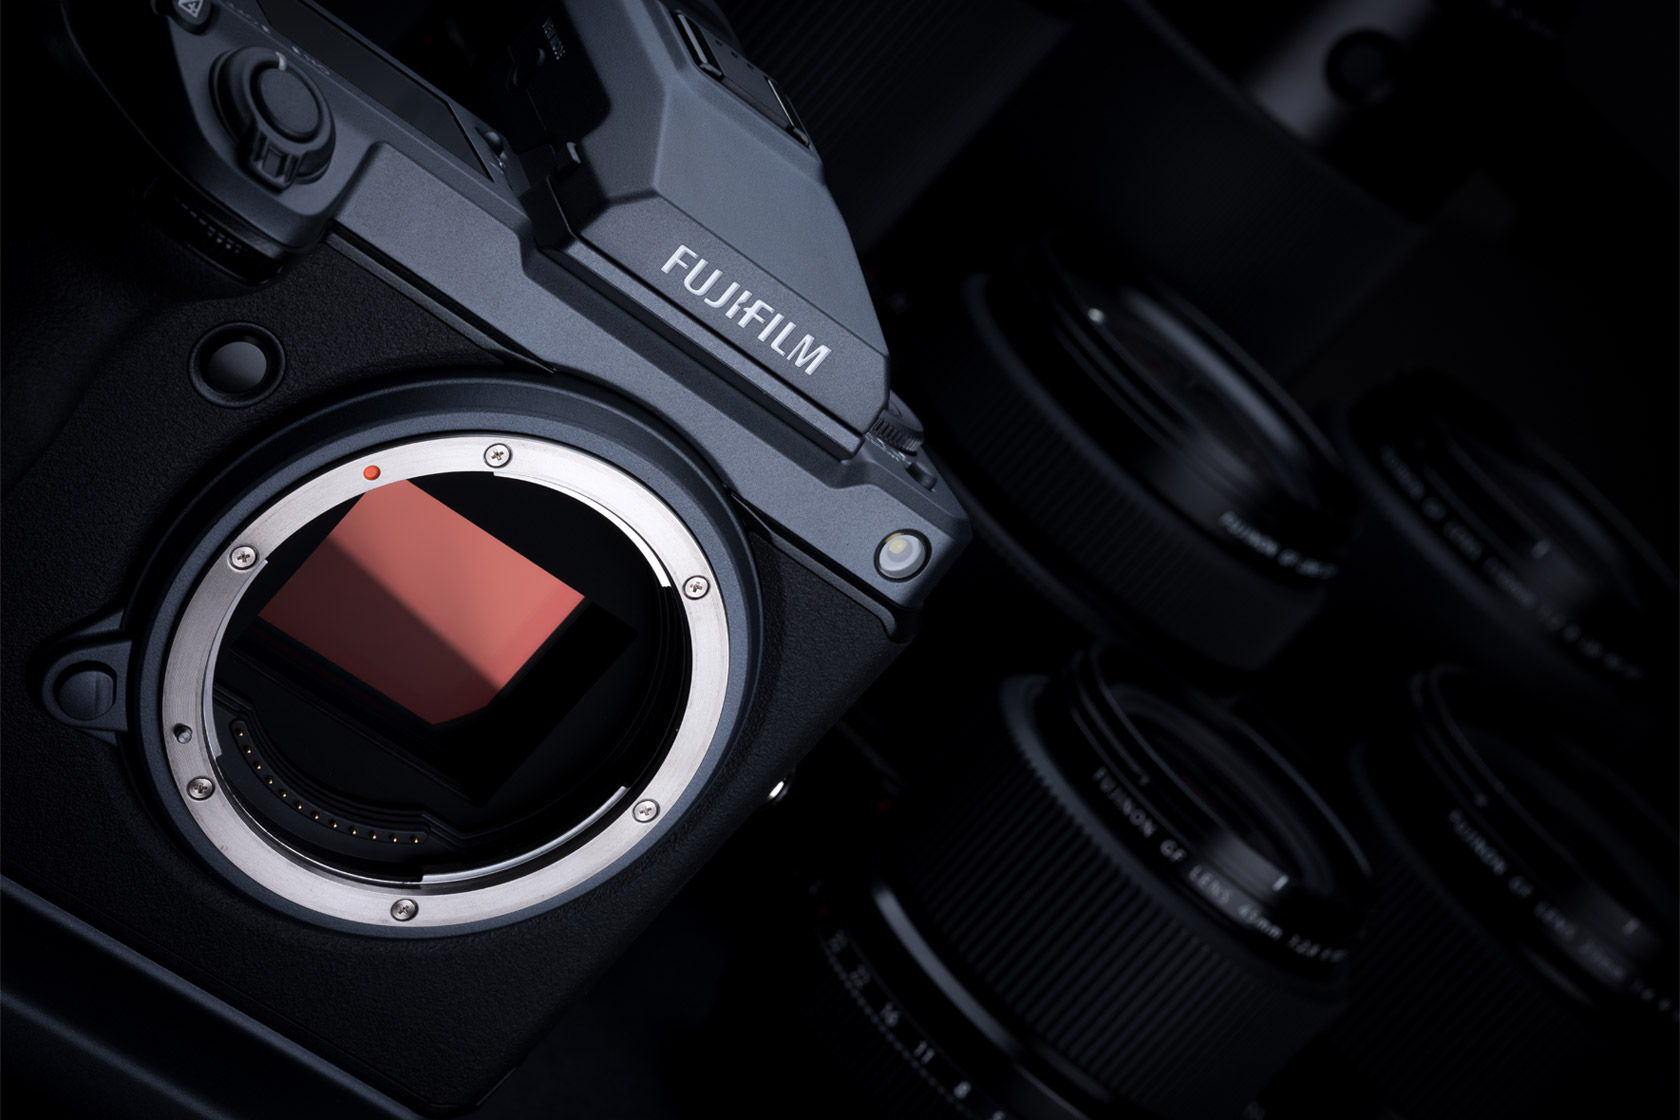 Zoomed in image of GFX system camera